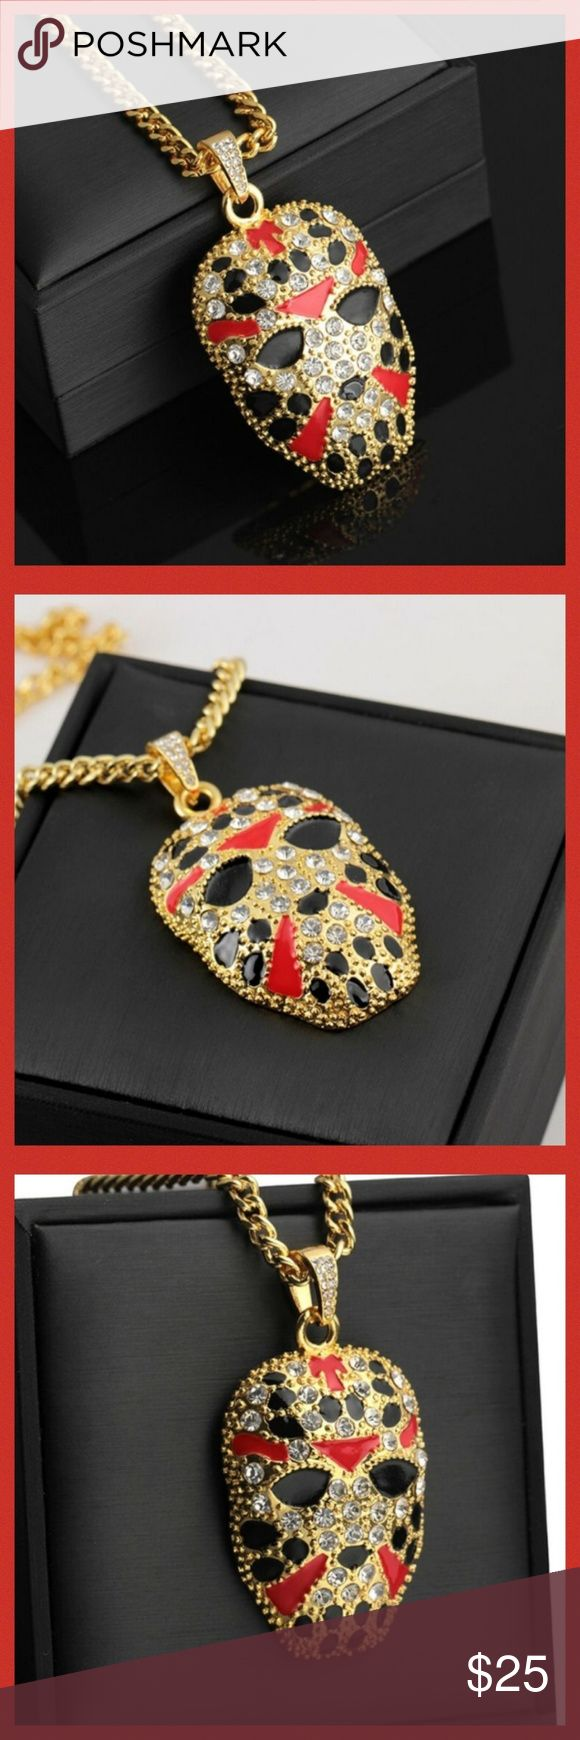 LAST ONE* Jason Hockey Mask Pendant w/Chain Boutique in